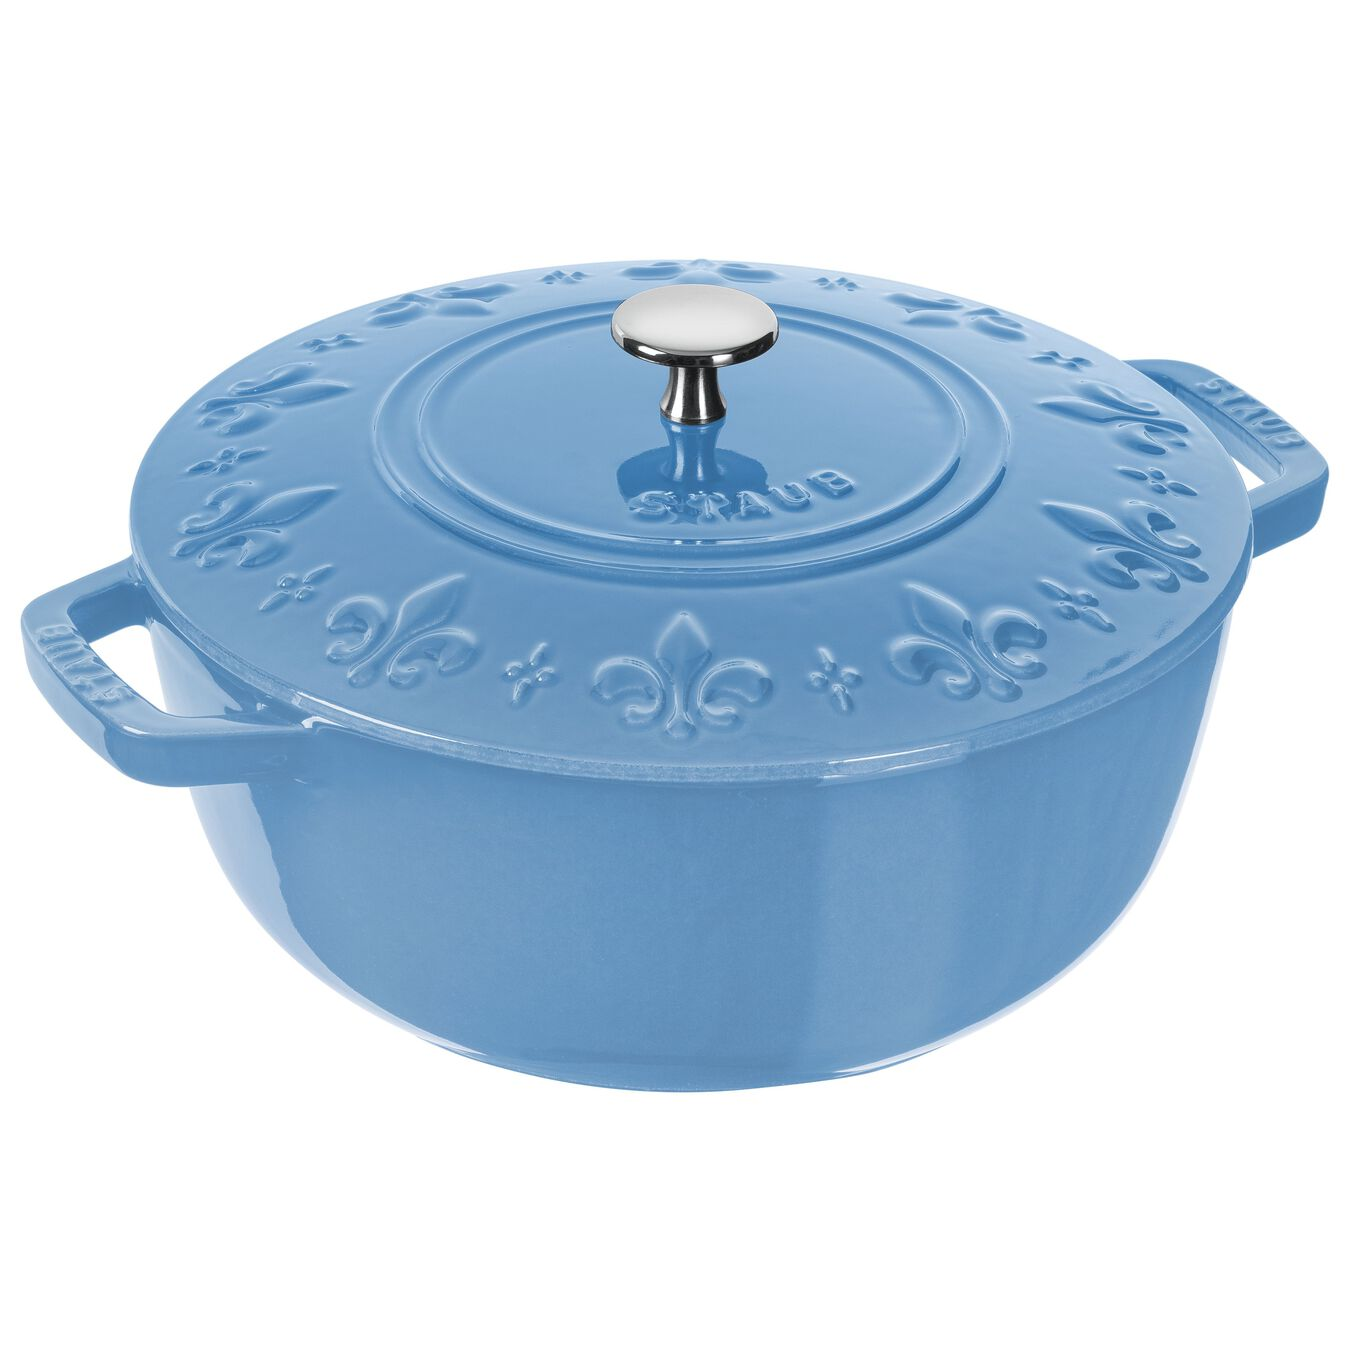 3.75-qt round French oven, Ice-Blue,,large 1